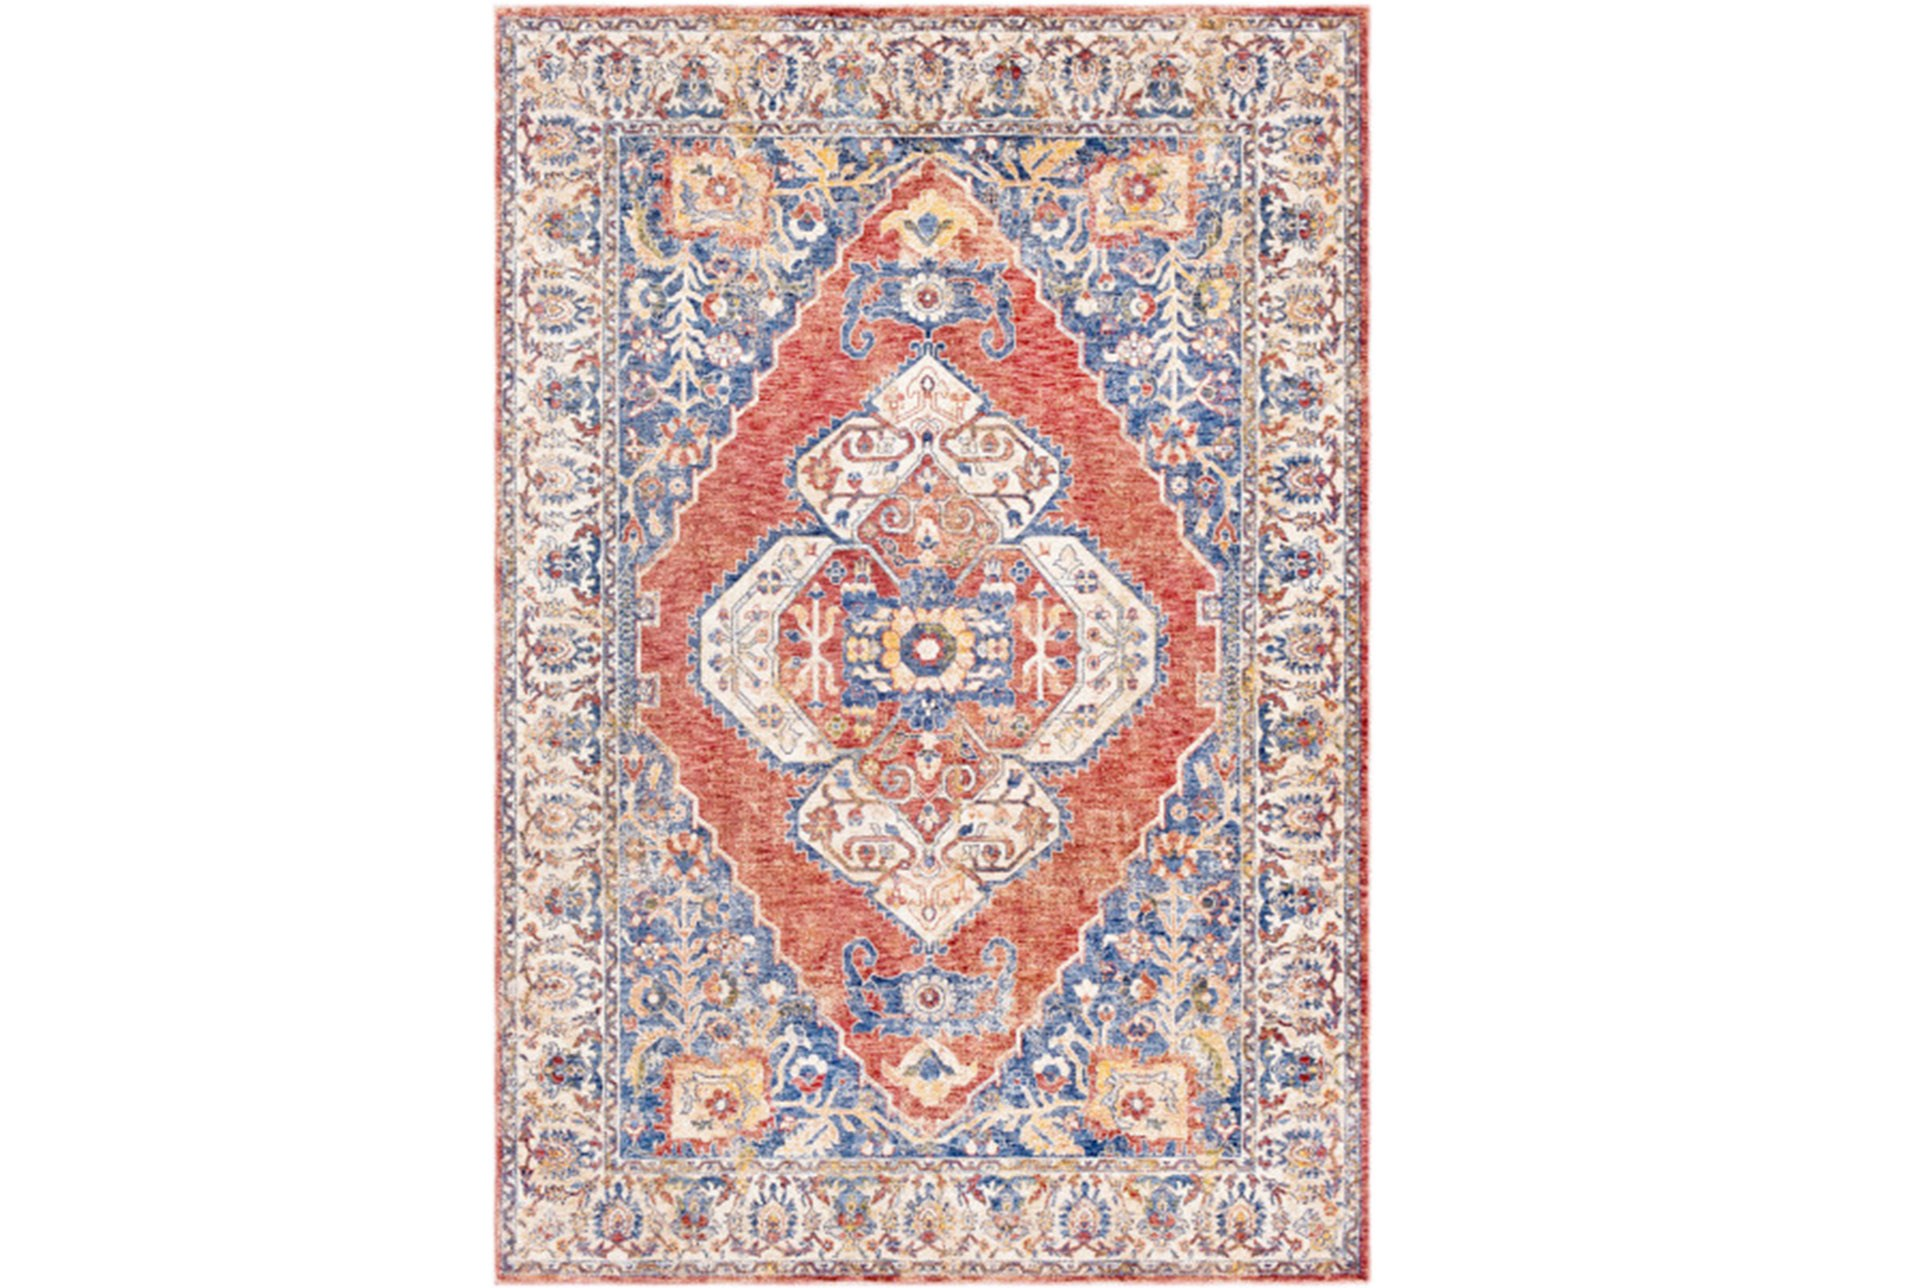 24x36 Rug Gelson Sienna Sunset Living Spaces